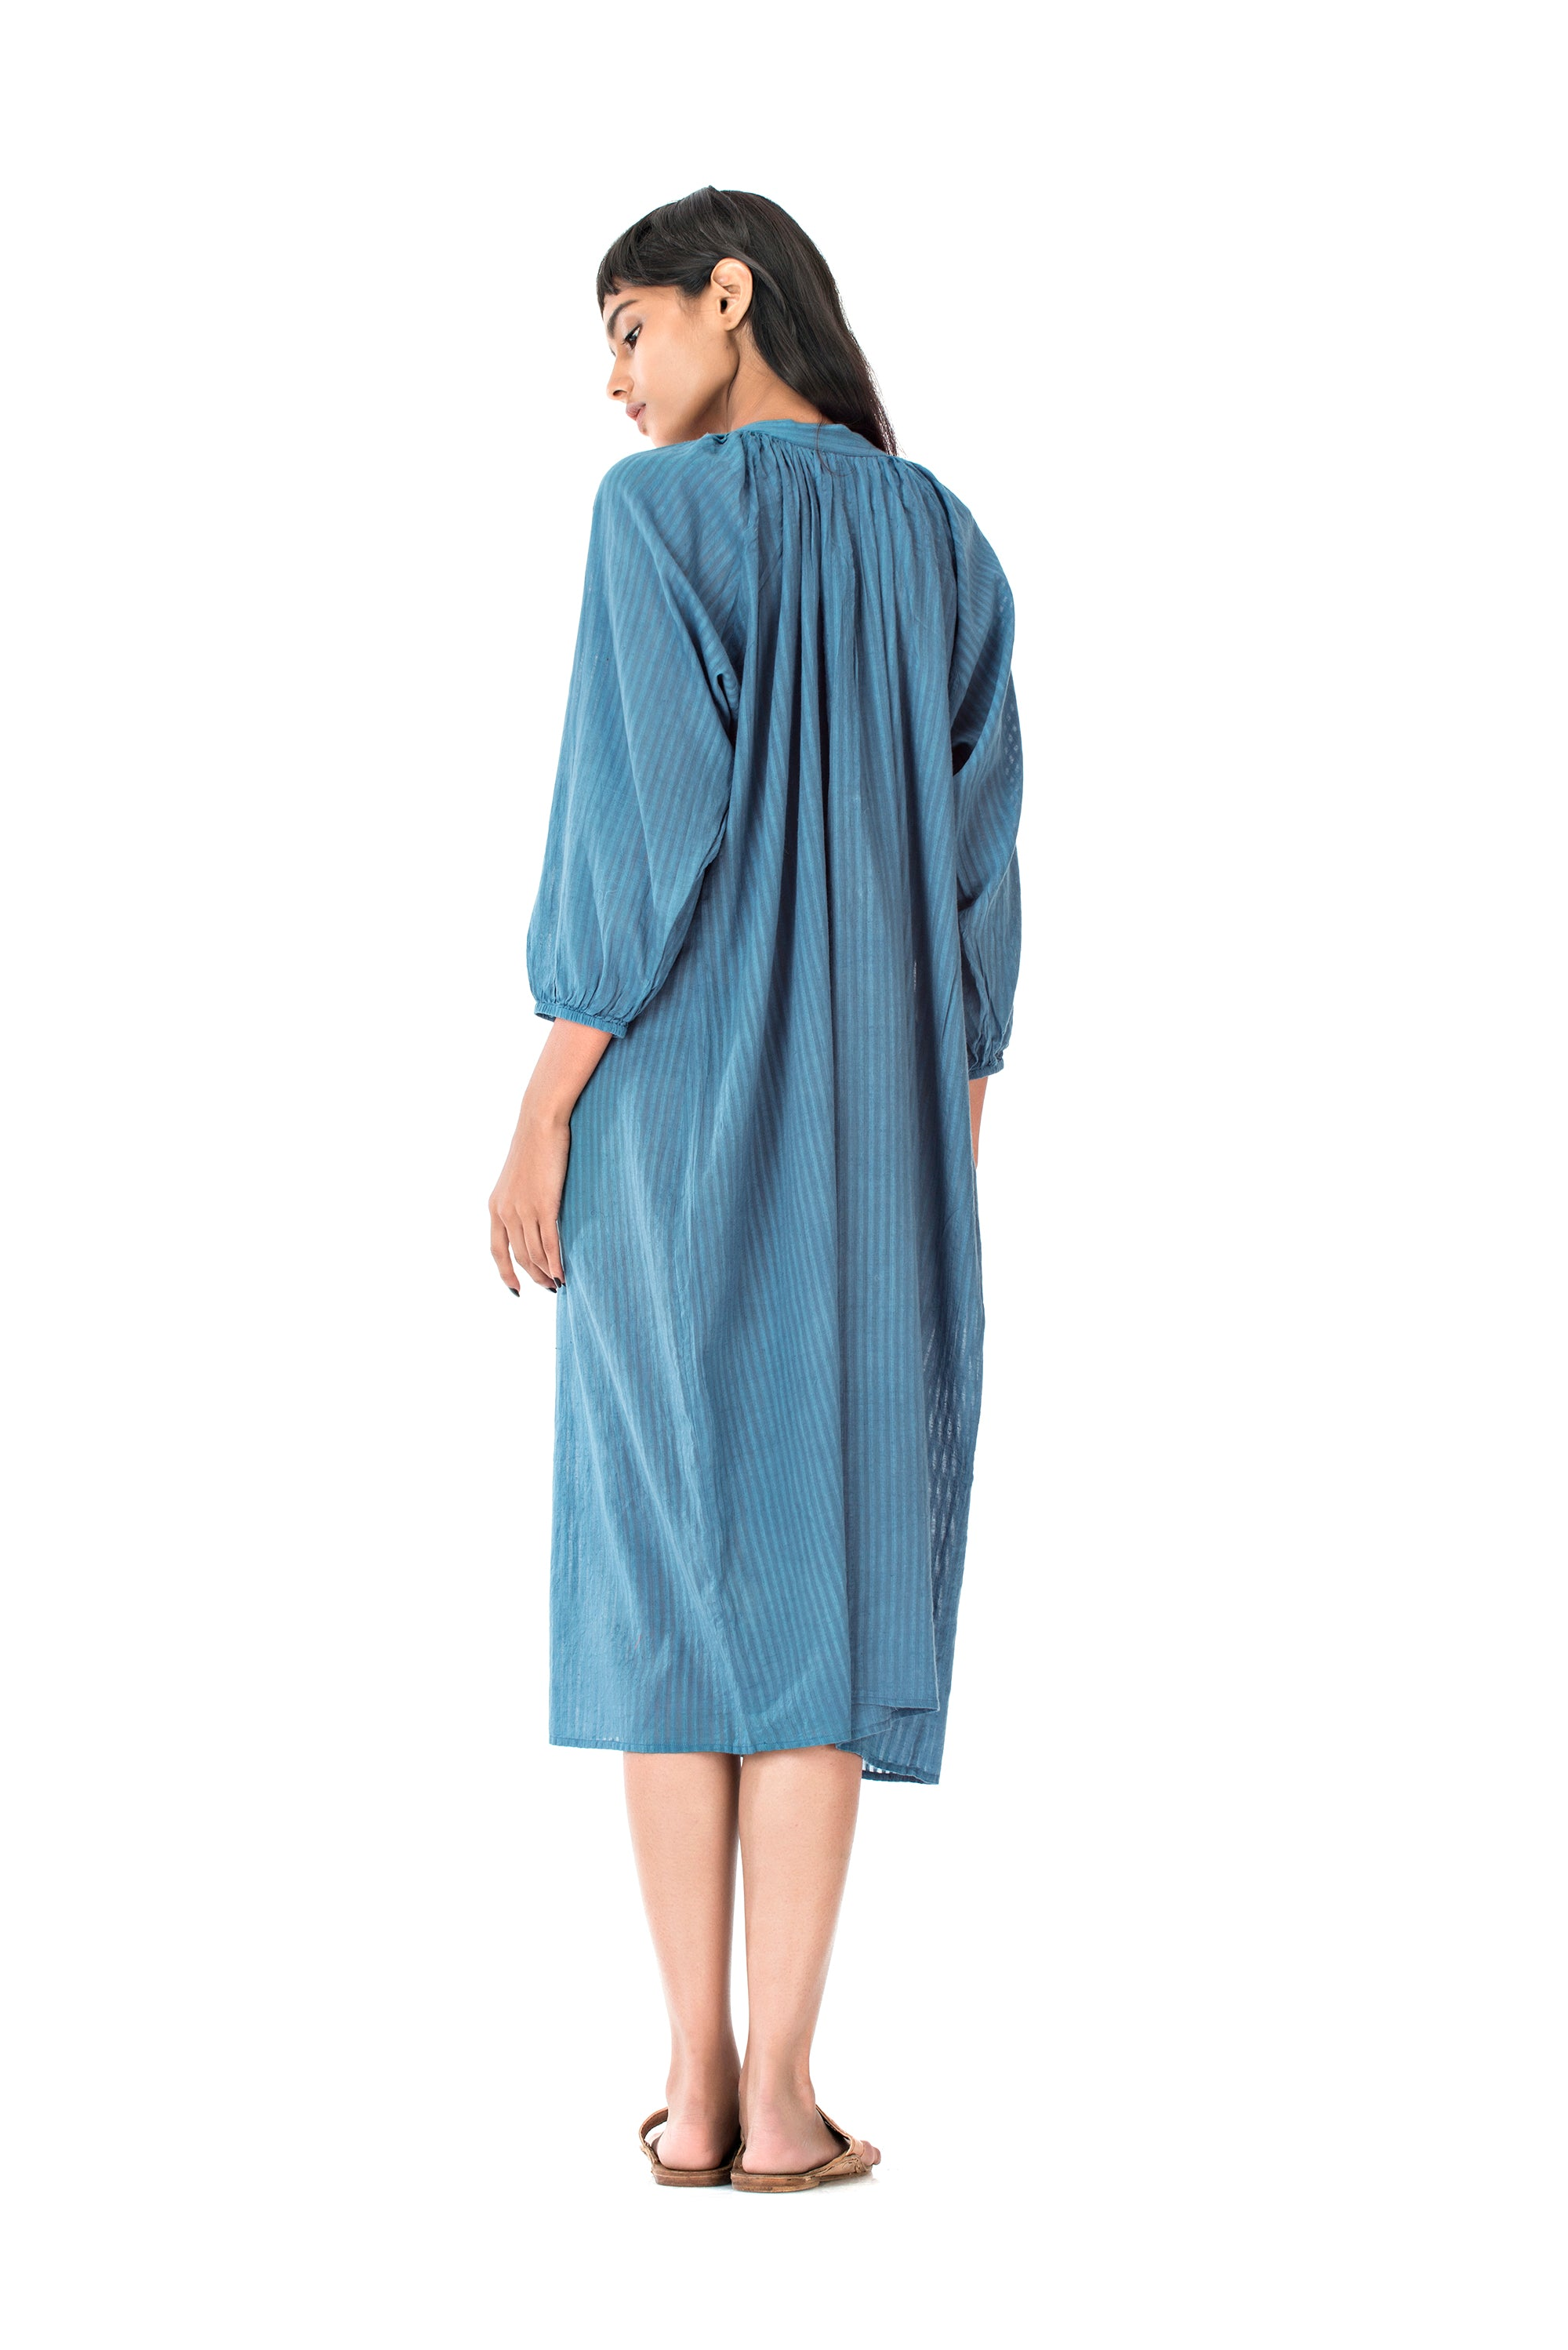 Zoey Rekha Dress Blue